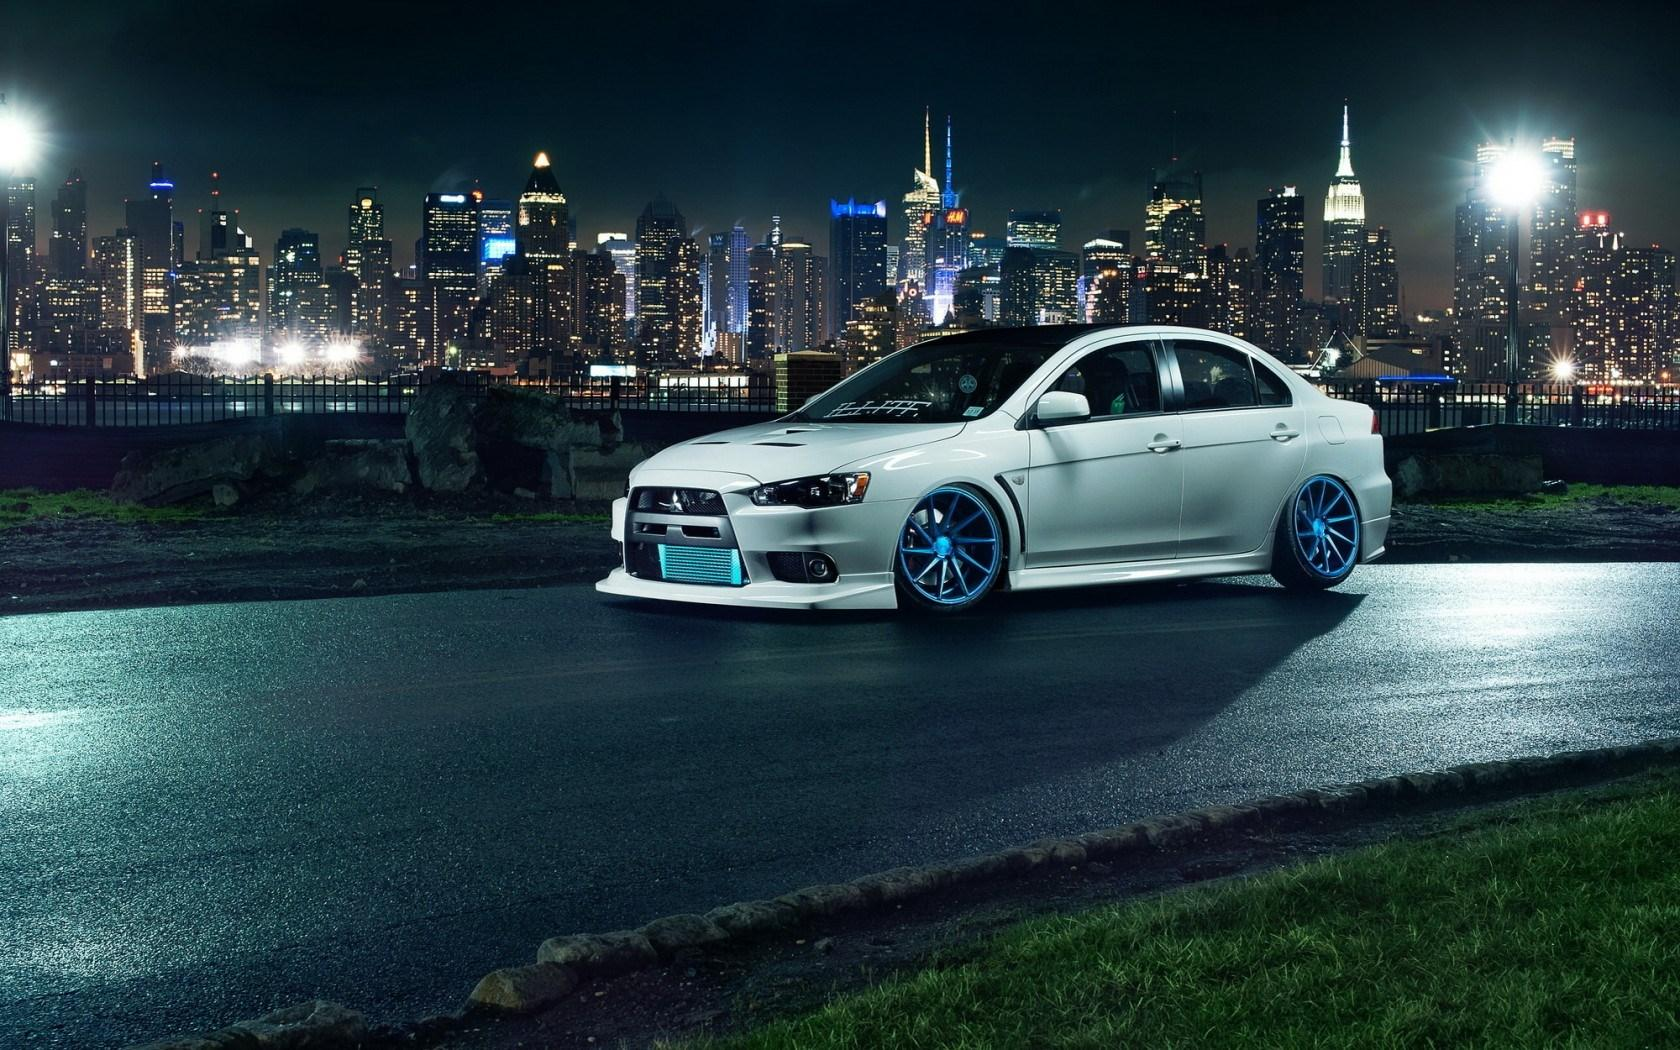 Lancer Evo X Wallpaper Wallpapersafari